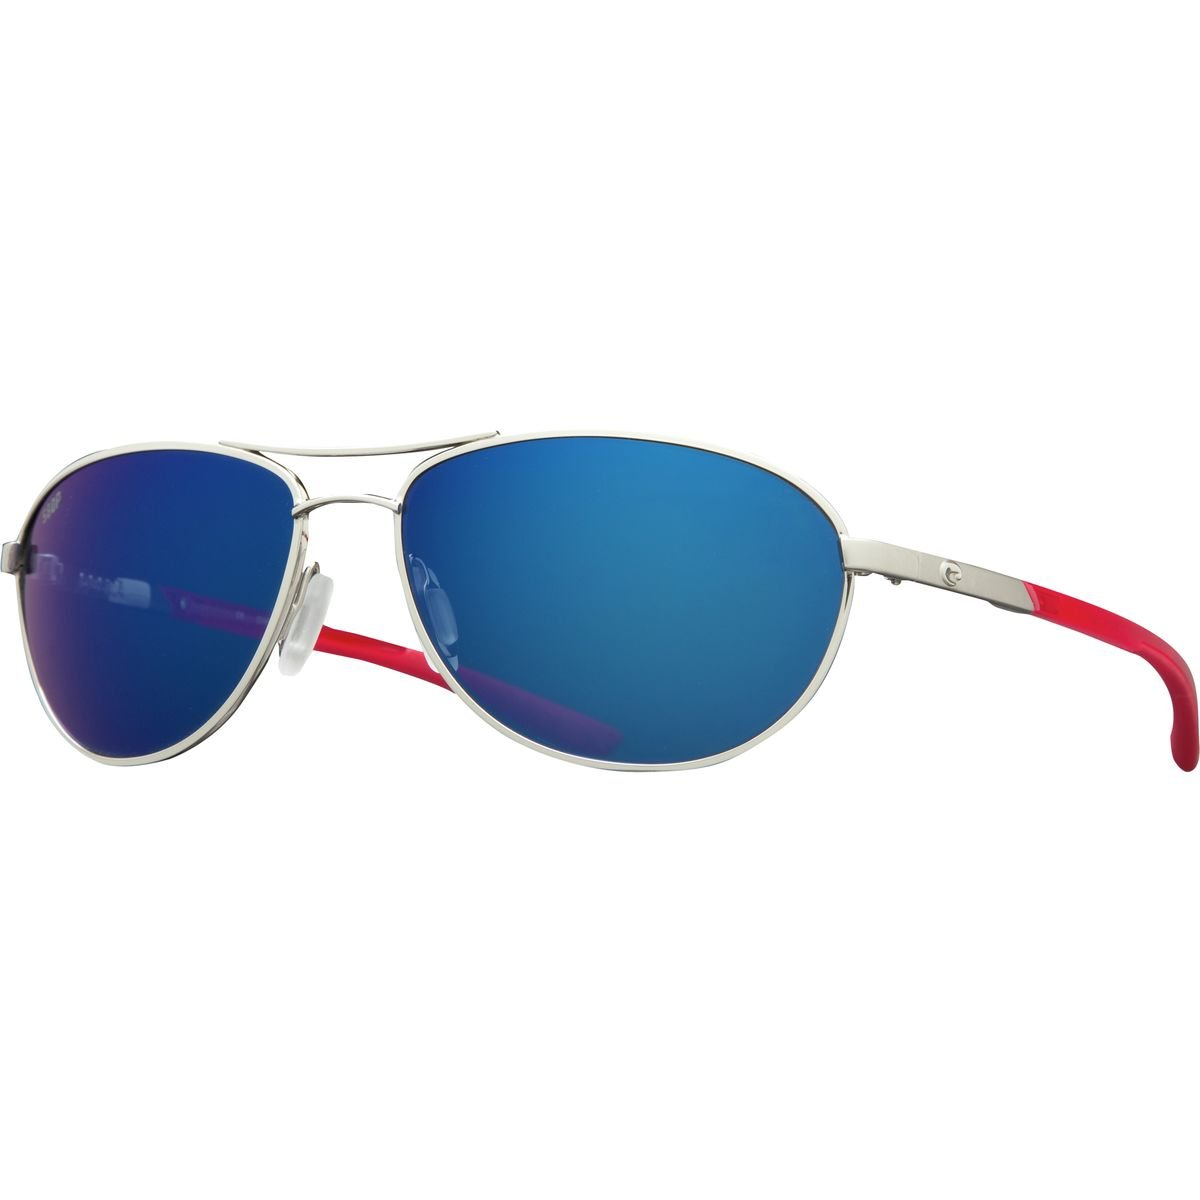 846af234b67dd Amazon.com  2015 Costa Kenny Chesney KC Kit ( Palladium with Crystal Red  Temples )  Clothing